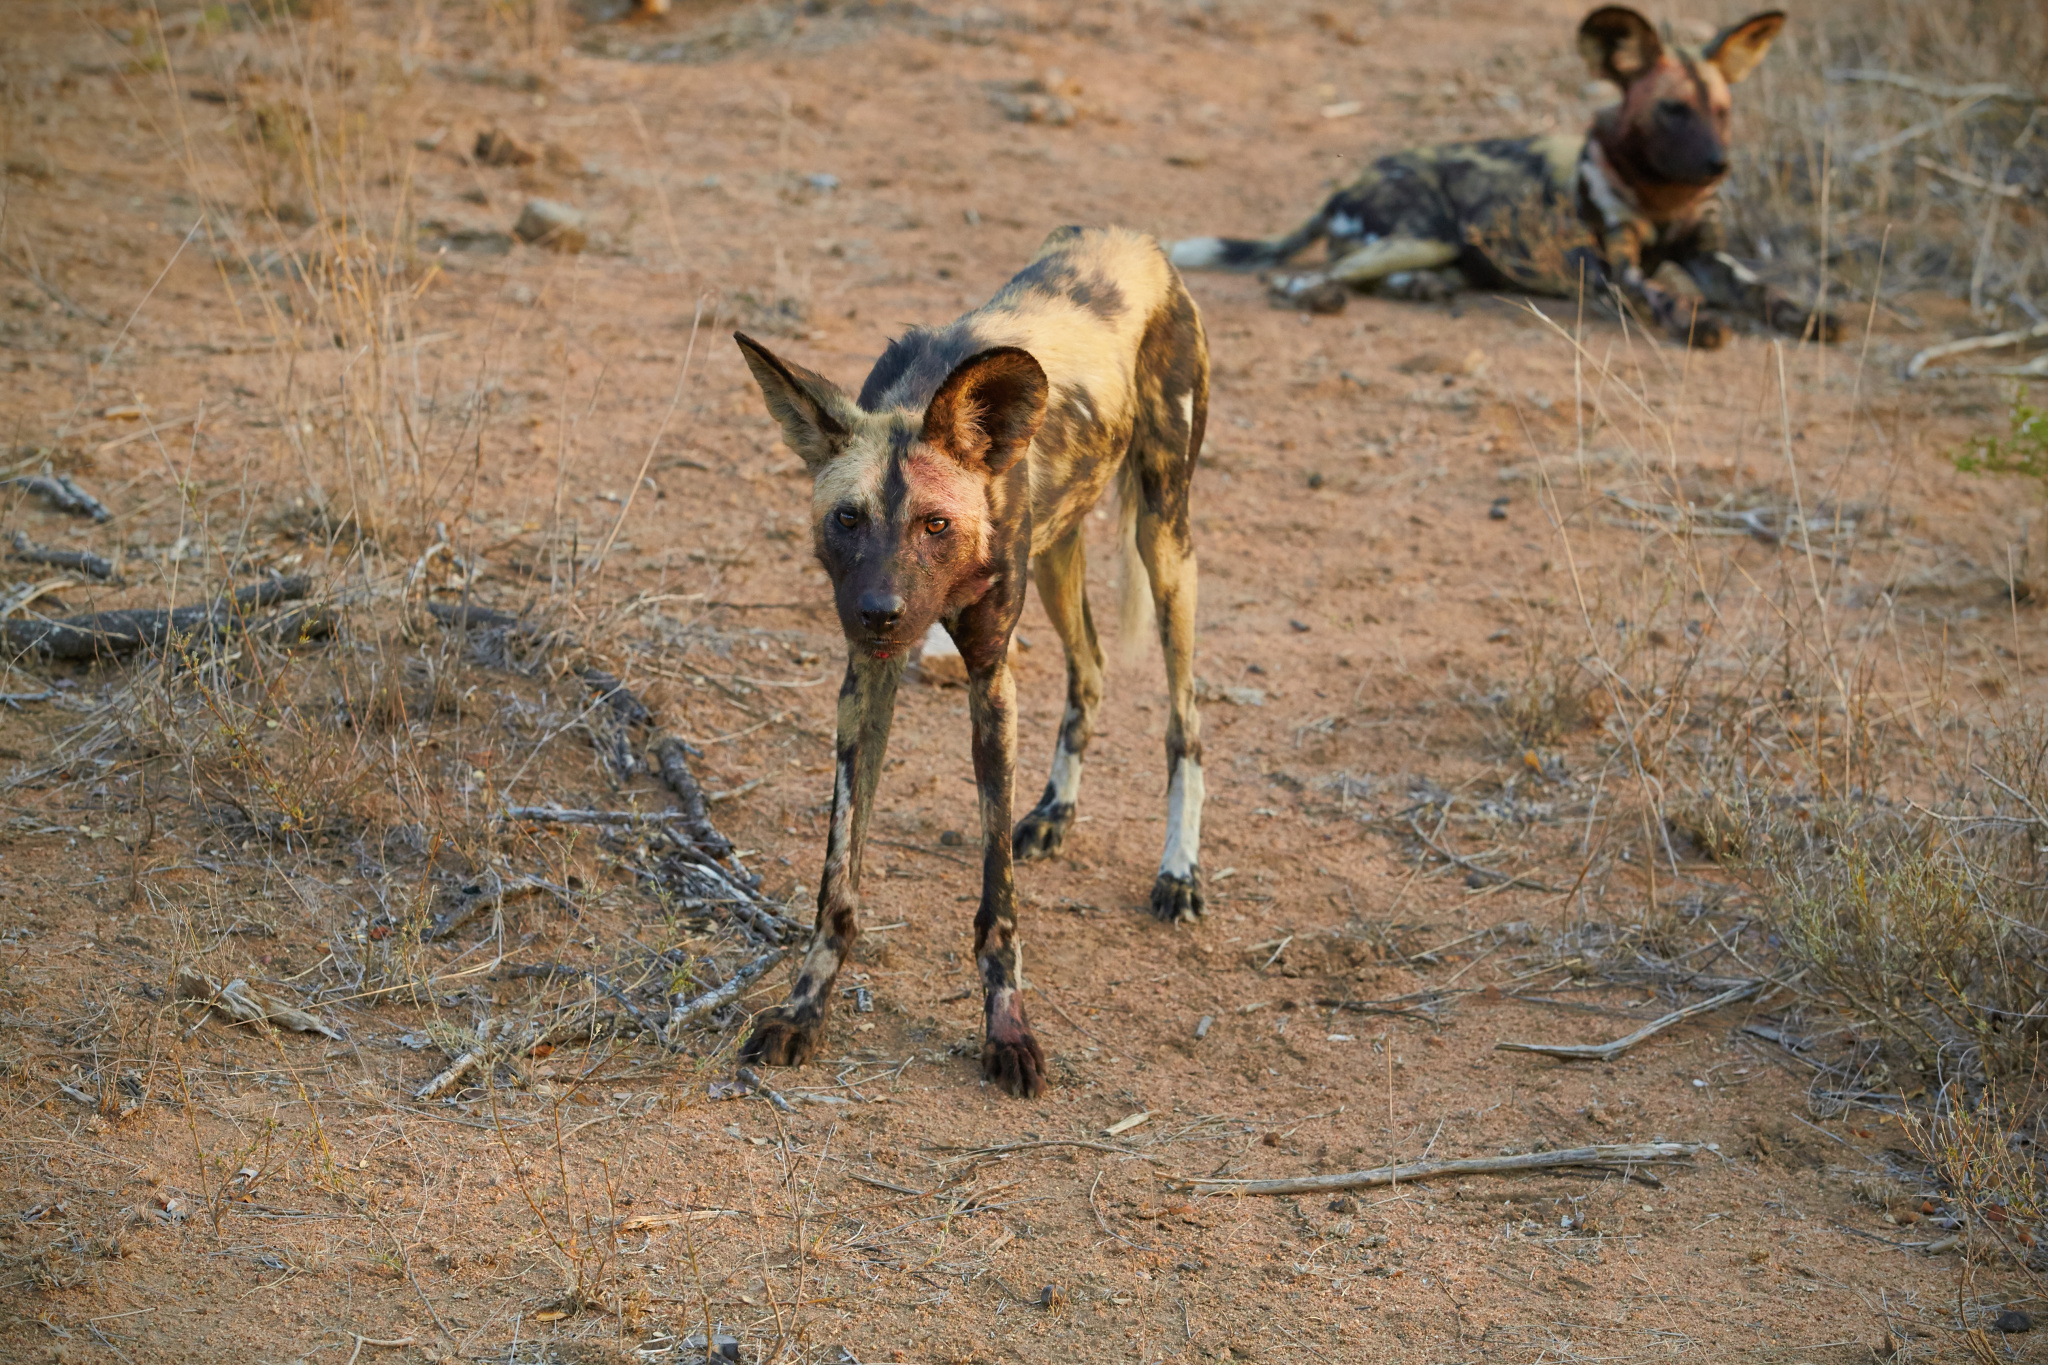 A Photographic Journey to Meet African Wild Dogs – The Continent's Uncapturable Shadows